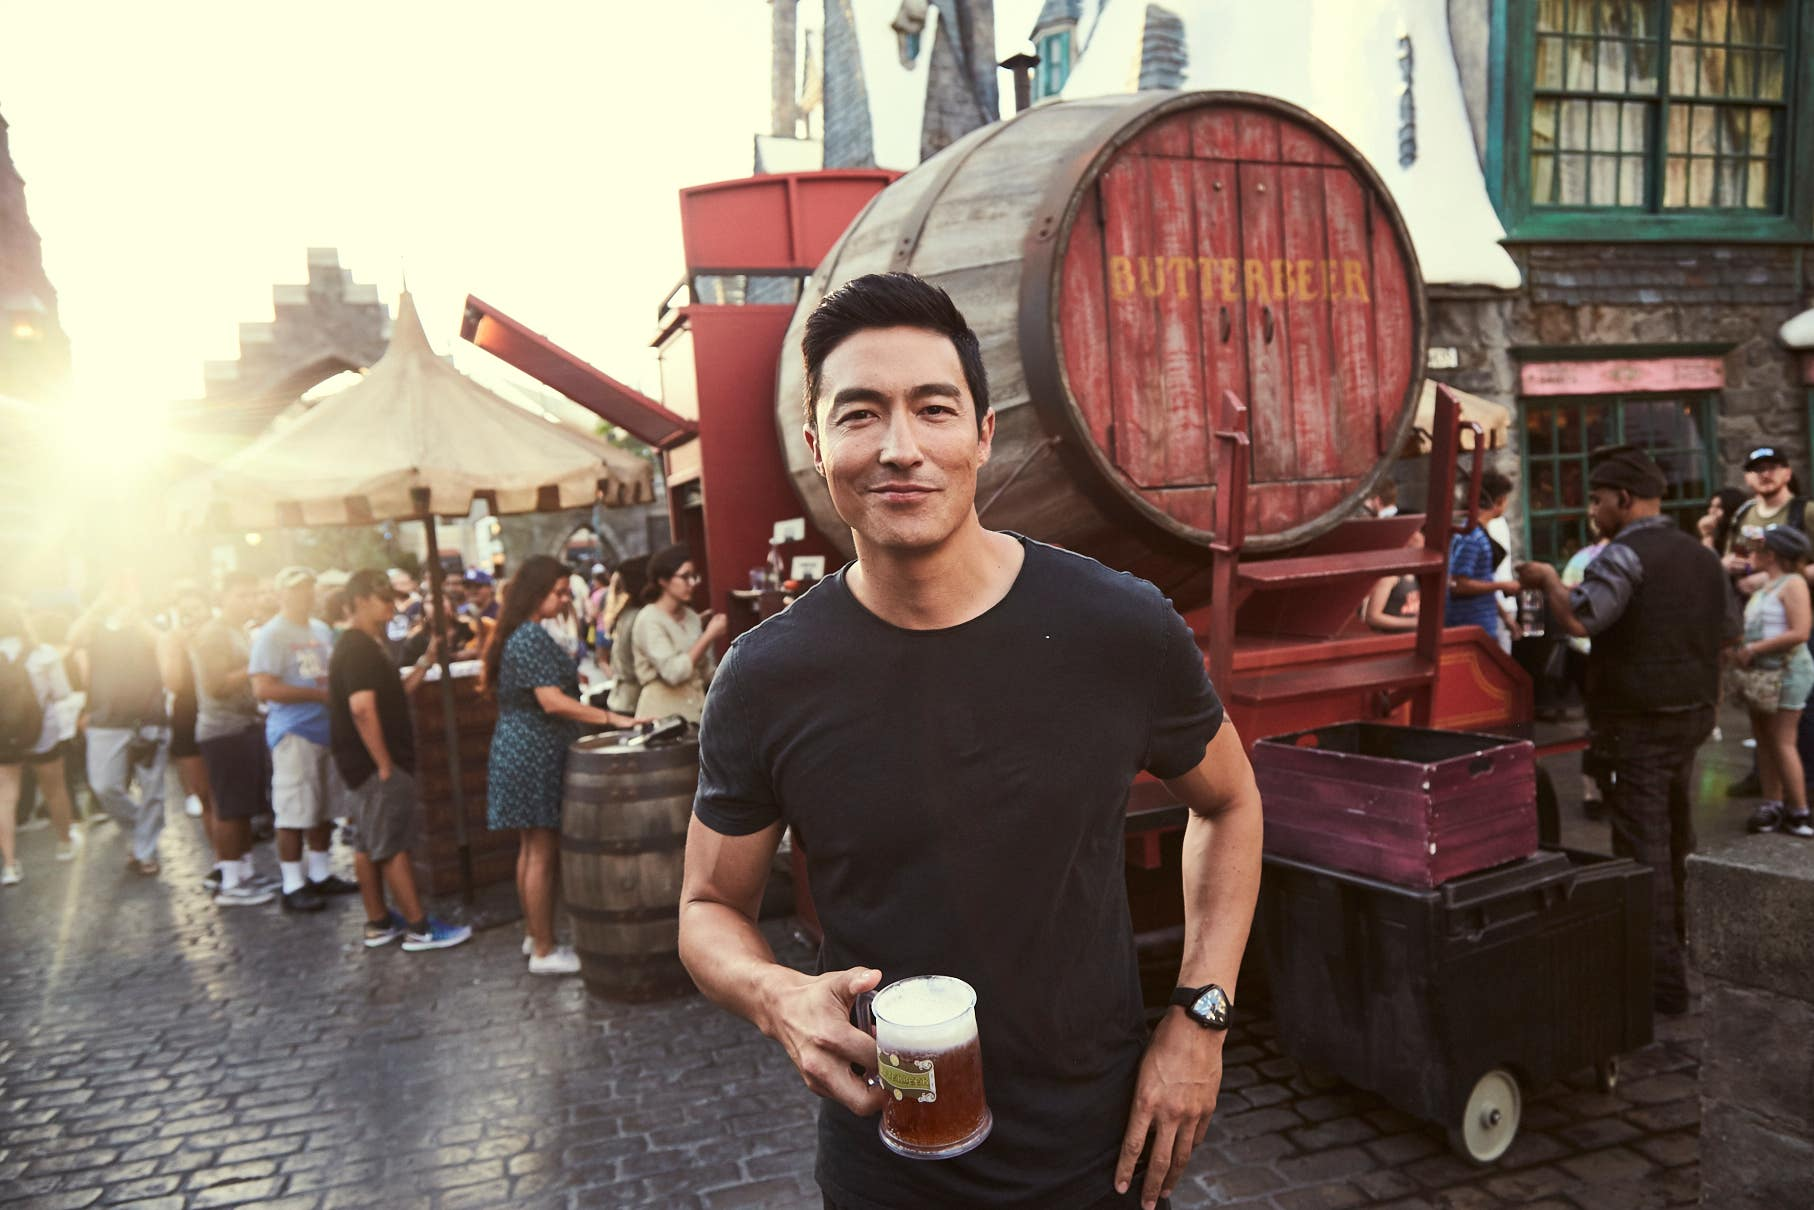 Daniel Henney enjoys a Butterbeer™ at The Wizarding World of Harry Potter™